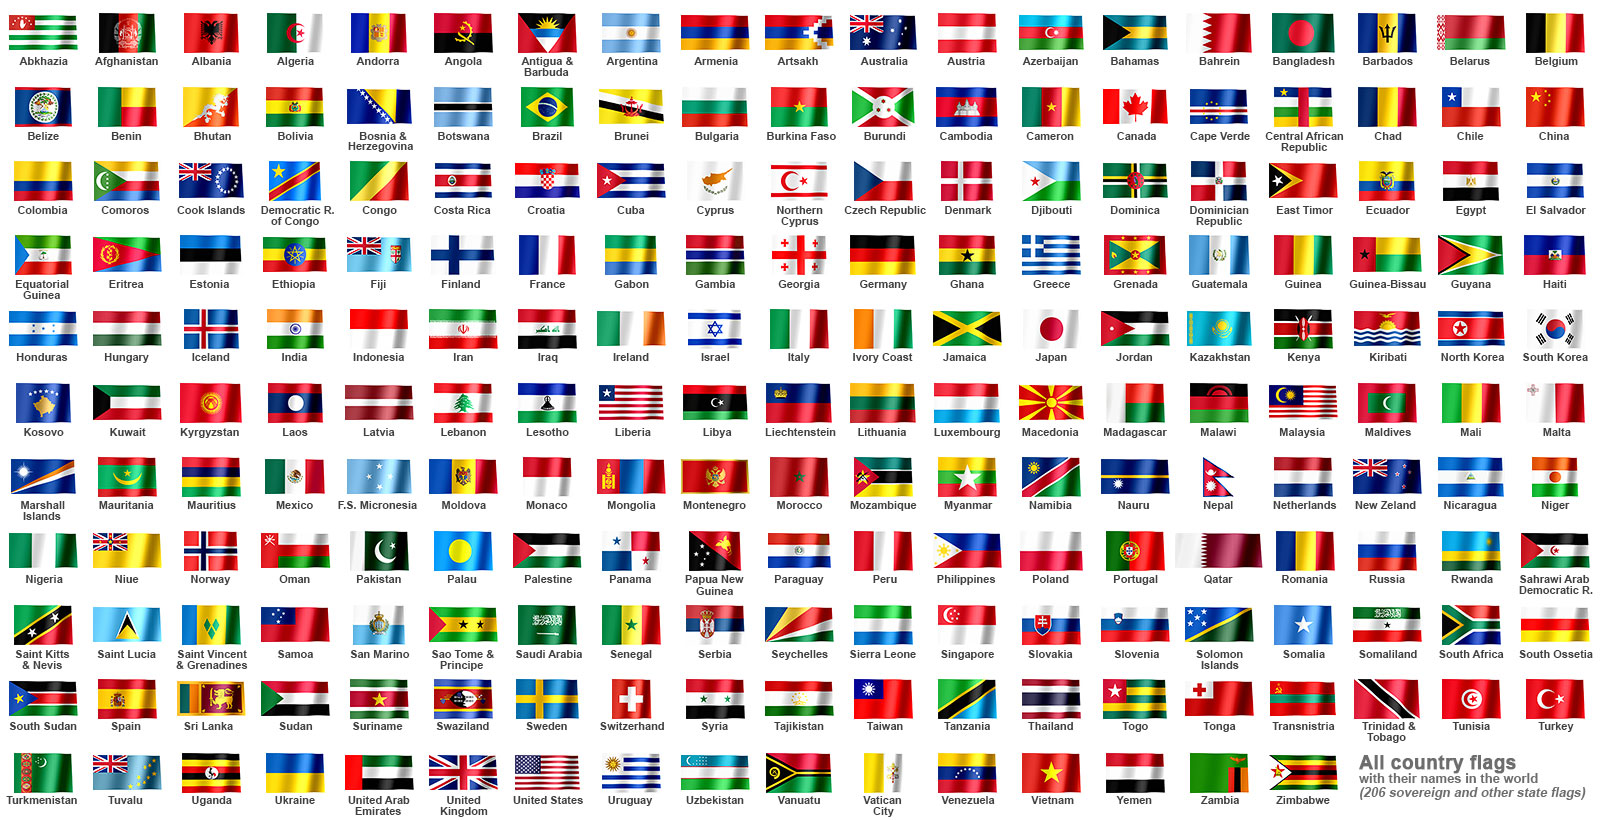 all country flags in